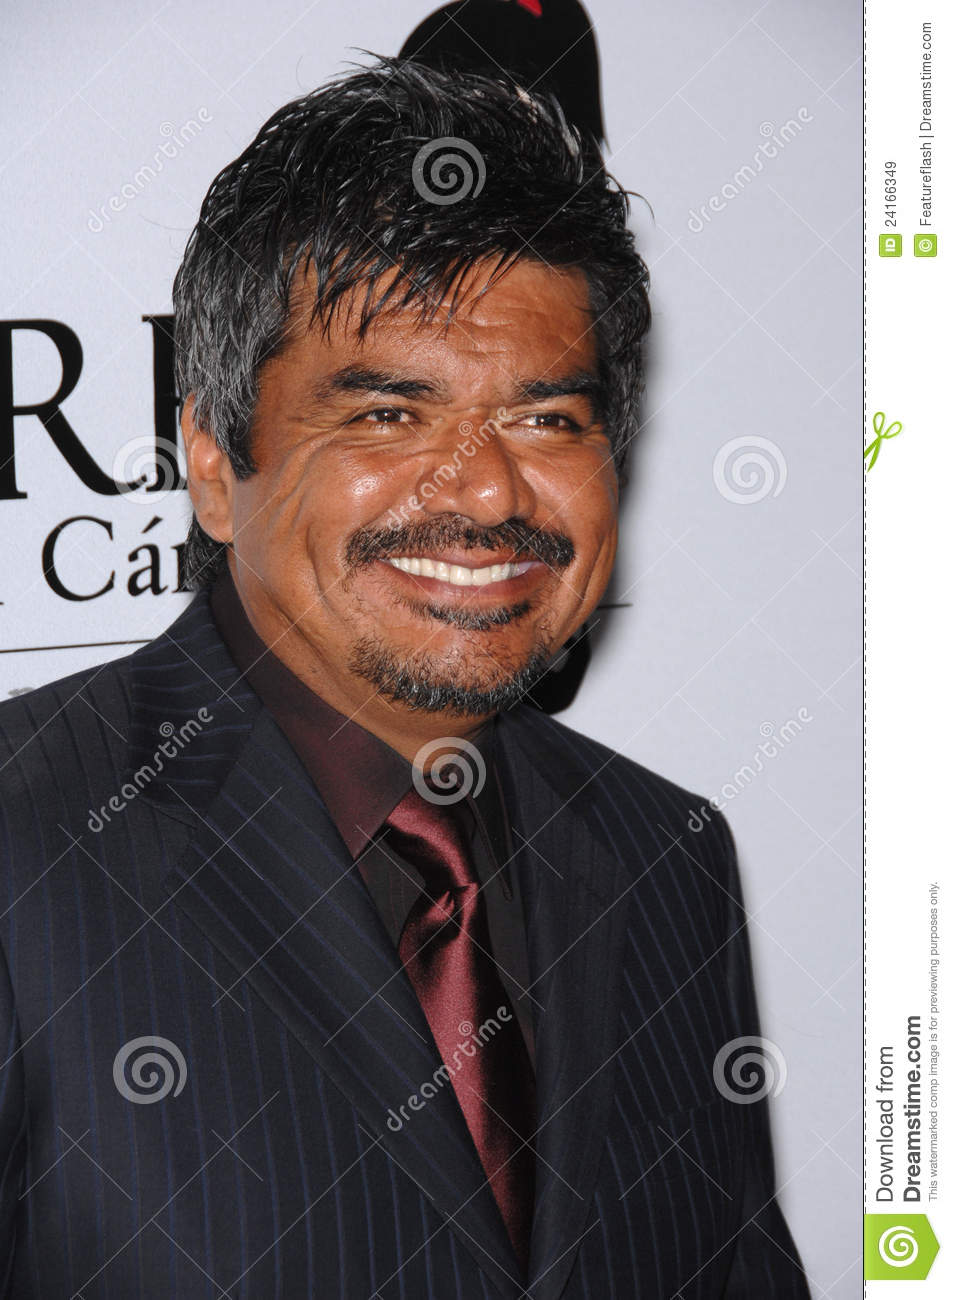 george lopez biogeorge lopez theme song, george lopez imdb, george lopez serie, george lopez stand up comedy, george lopez watch online free, george lopez and kevin hart, george lopez pictures, george lopez bio, george lopez best friend, george lopez sharkboy, george lopez intro, george lopez show, george lopez intro song, george lopez theme song download, george lopez push your cousin, george lopez as tony montana, george lopez on steve harvey, george lopez tv show